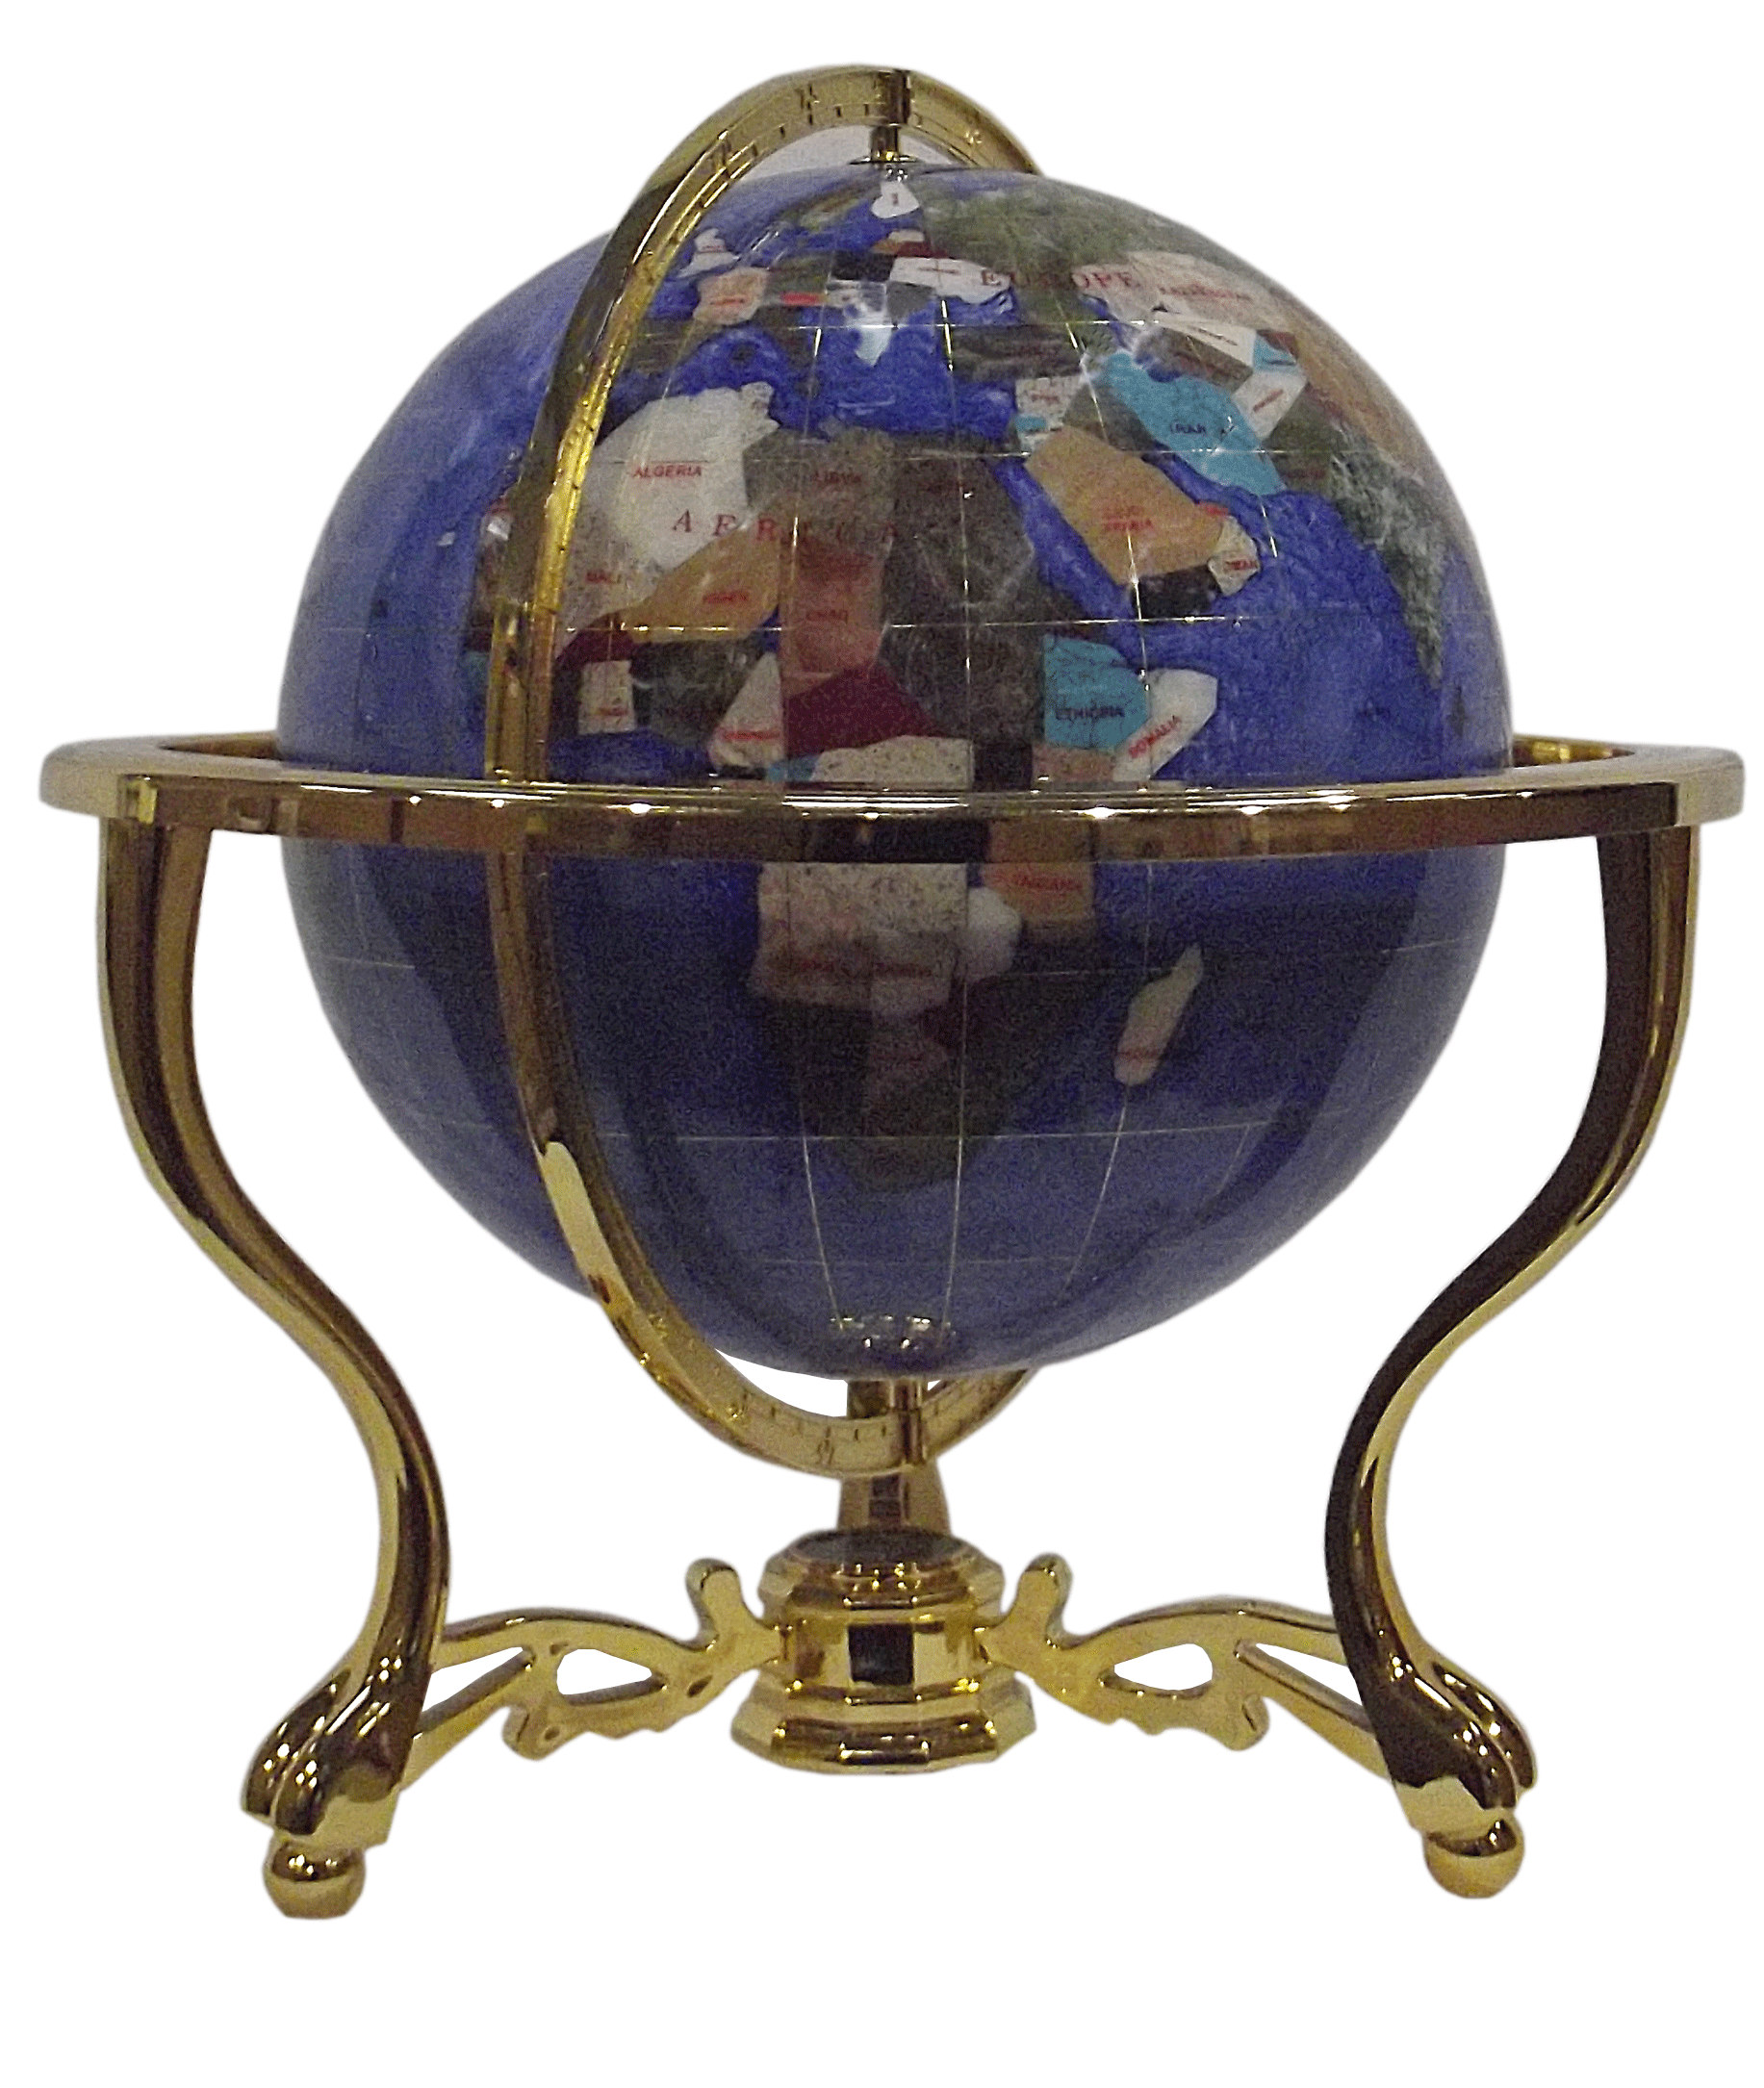 gemstone globe tabletop 33 cm blue cambridge 3 leg stand gold finish gemmoglobe 3pb 33 d bleu c. Black Bedroom Furniture Sets. Home Design Ideas